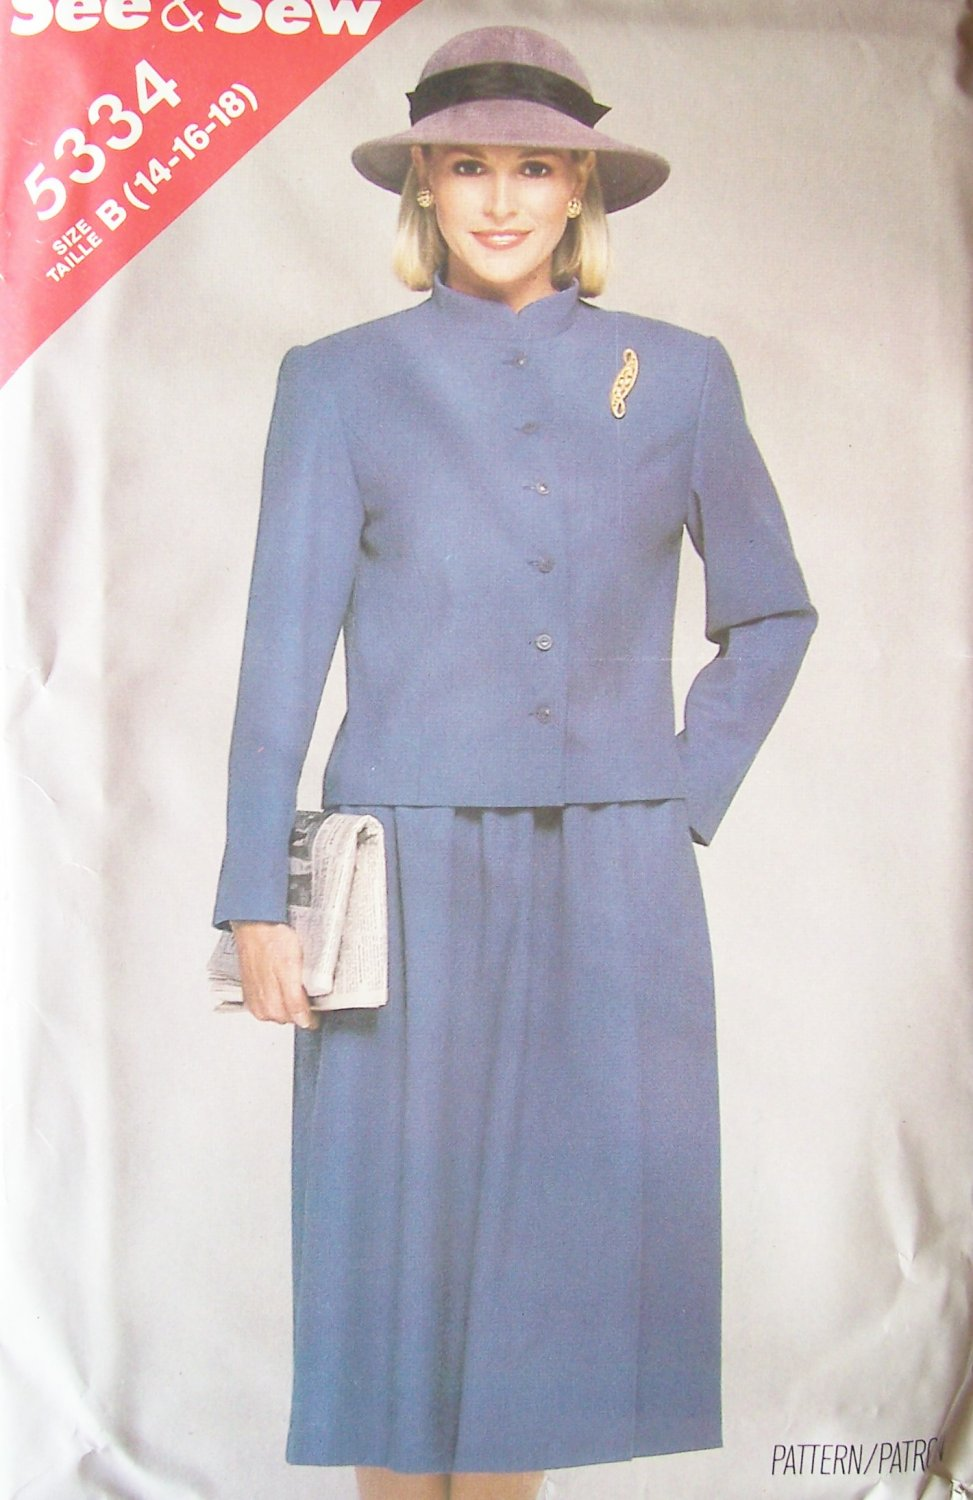 Vintage 80s Butterick 5334 See and Sew Front Button Jacket Flared Skirt Pattern Uncut Size 14-18